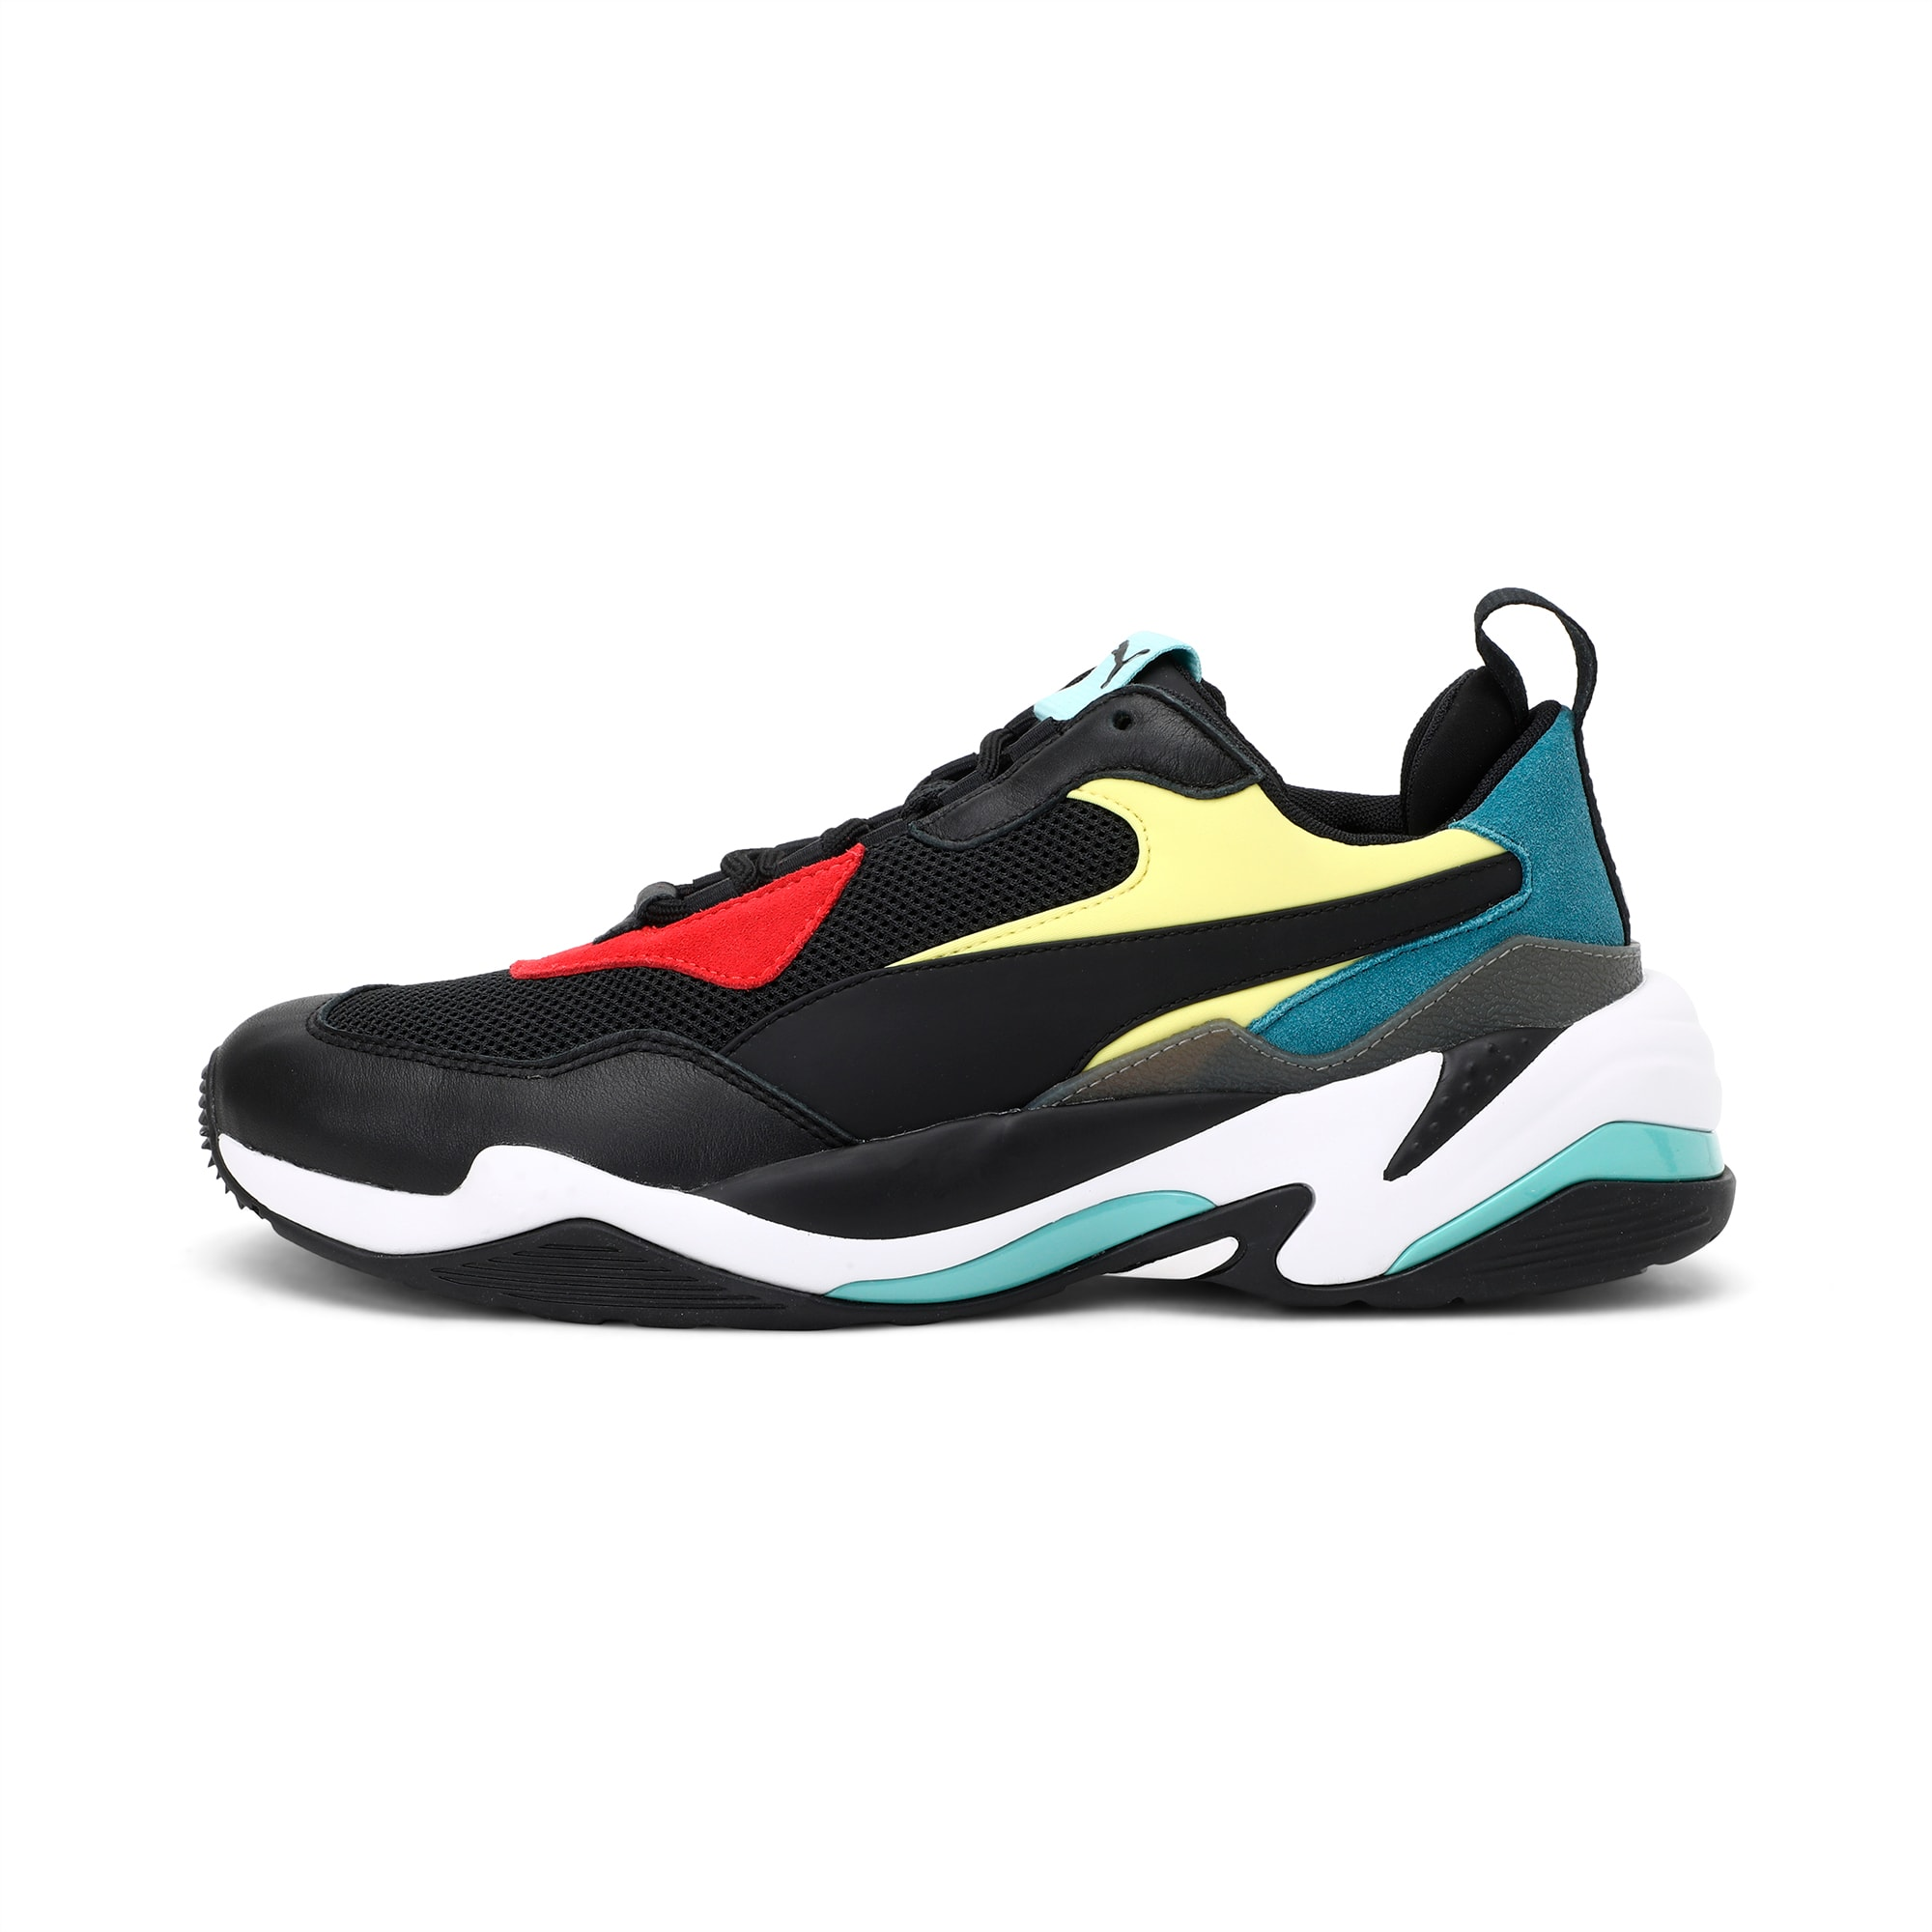 Thunder Spectra Trainers | 01 | PUMA Sneakers | PUMA